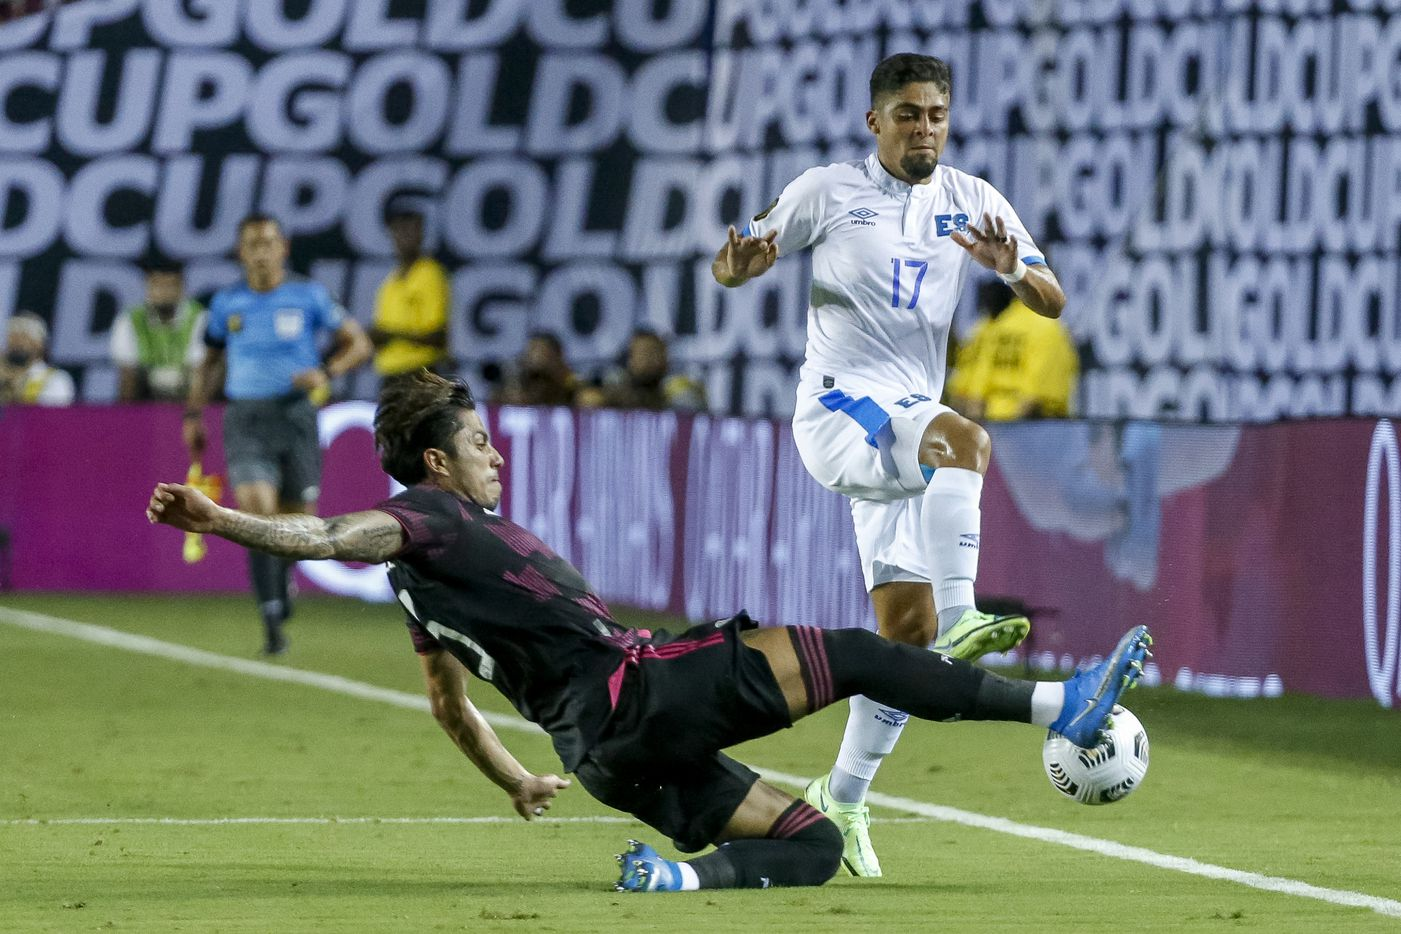 Mexico defender Osvaldo Rodríguez (5) slides into El Salvador midfielder Jairo Henriquez (17) during the first half of a CONCACAF Gold Cup Group A soccer match at the Cotton Bowl on Sunday, July 18, 2021, in Dallas. (Elias Valverde II/The Dallas Morning News)